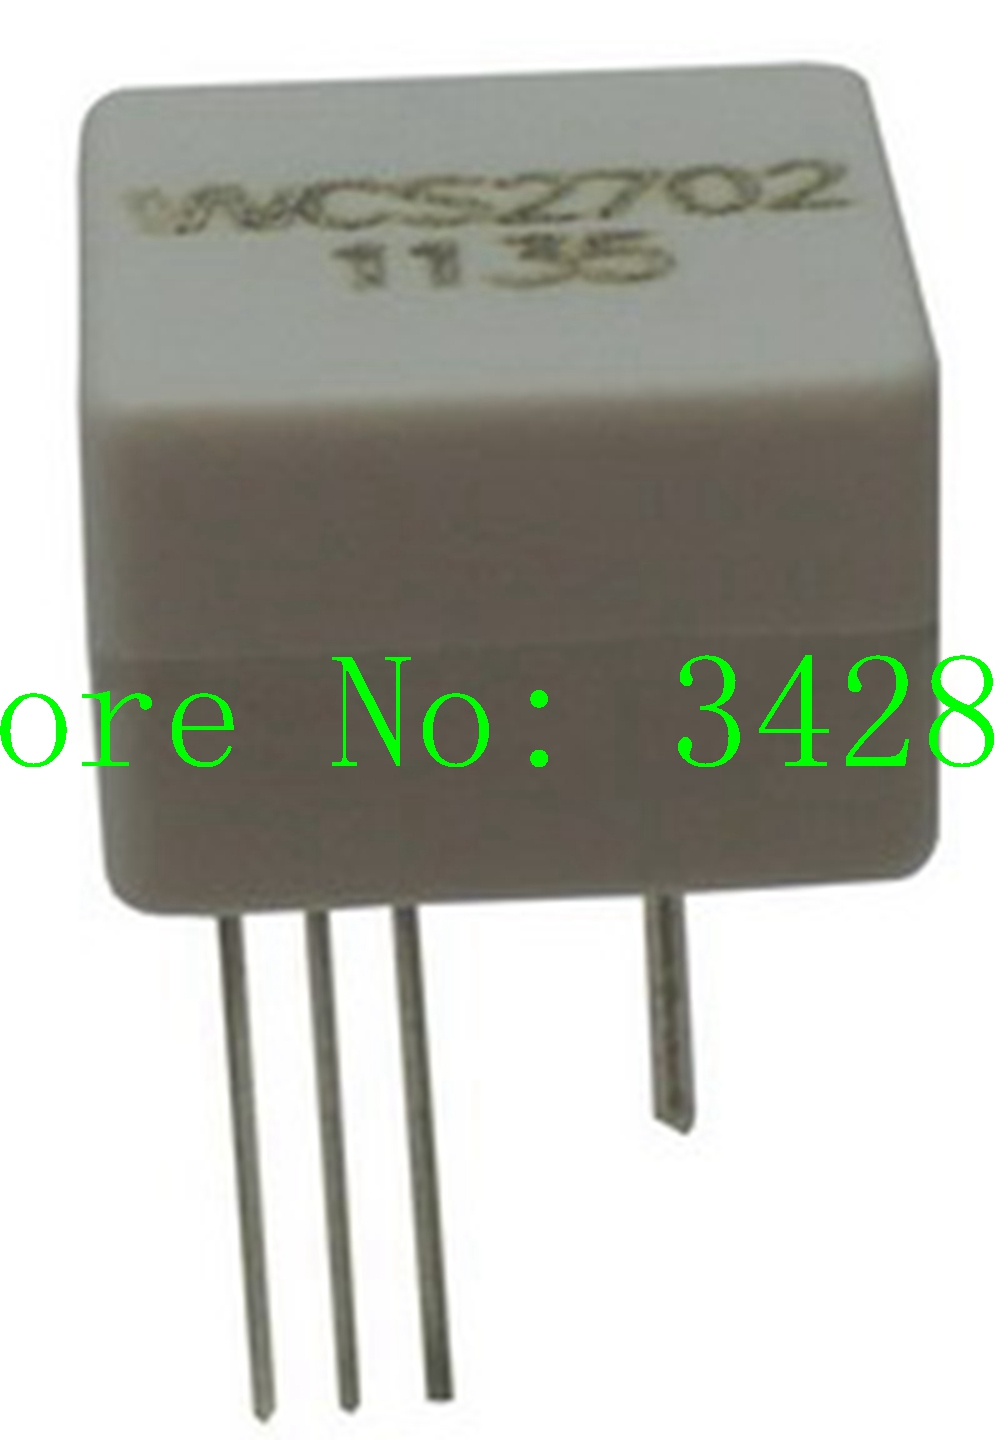 Buy Wcs2702 Current Sensor And Get Free Shipping On Effect Sensing Linear Hall Circuit